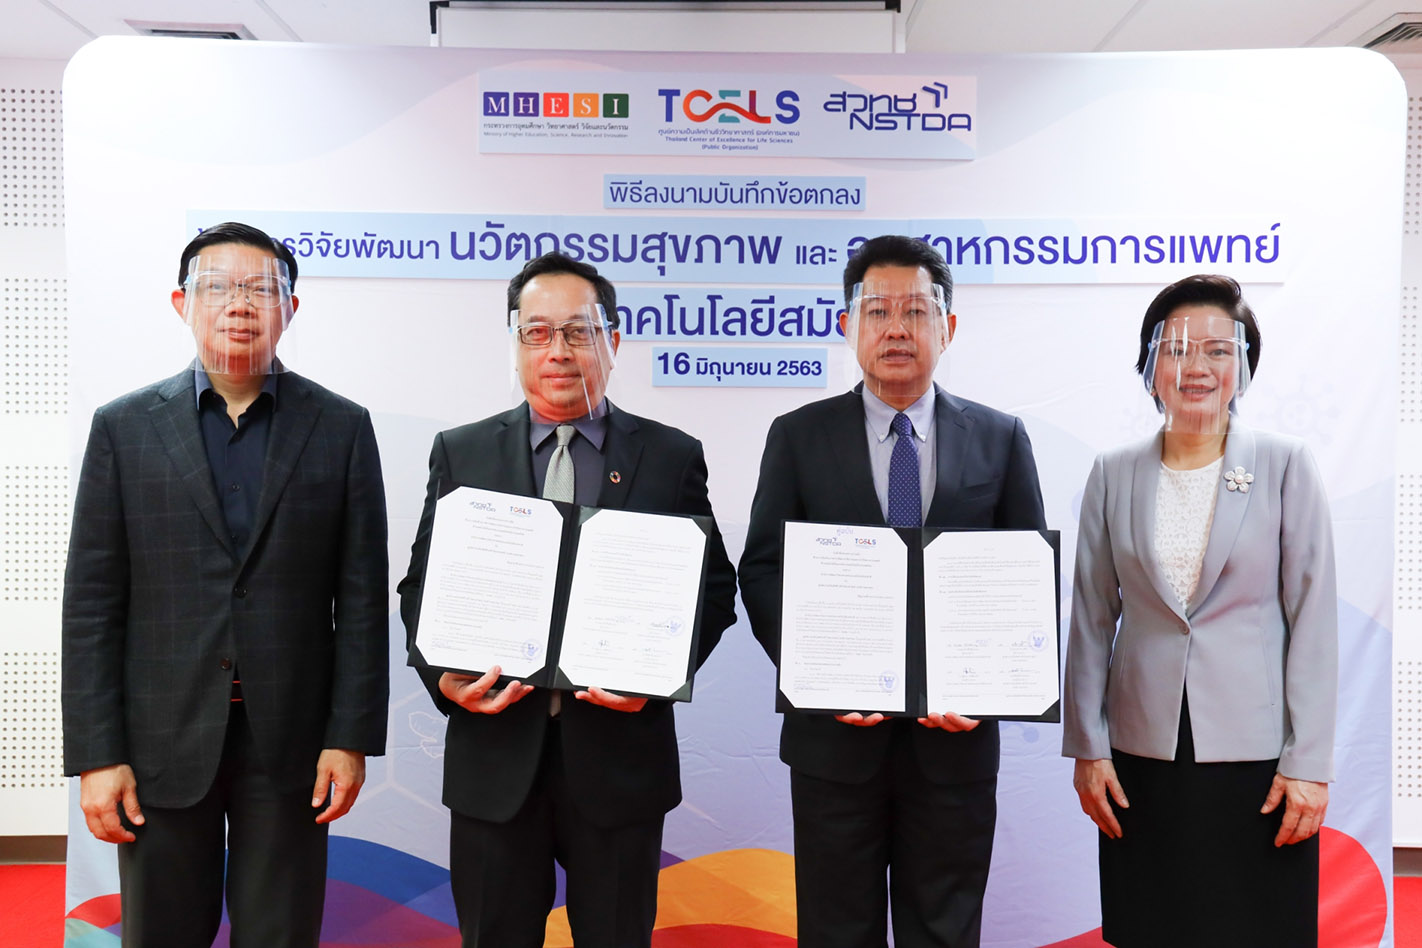 NSTDA partners with TCELS...